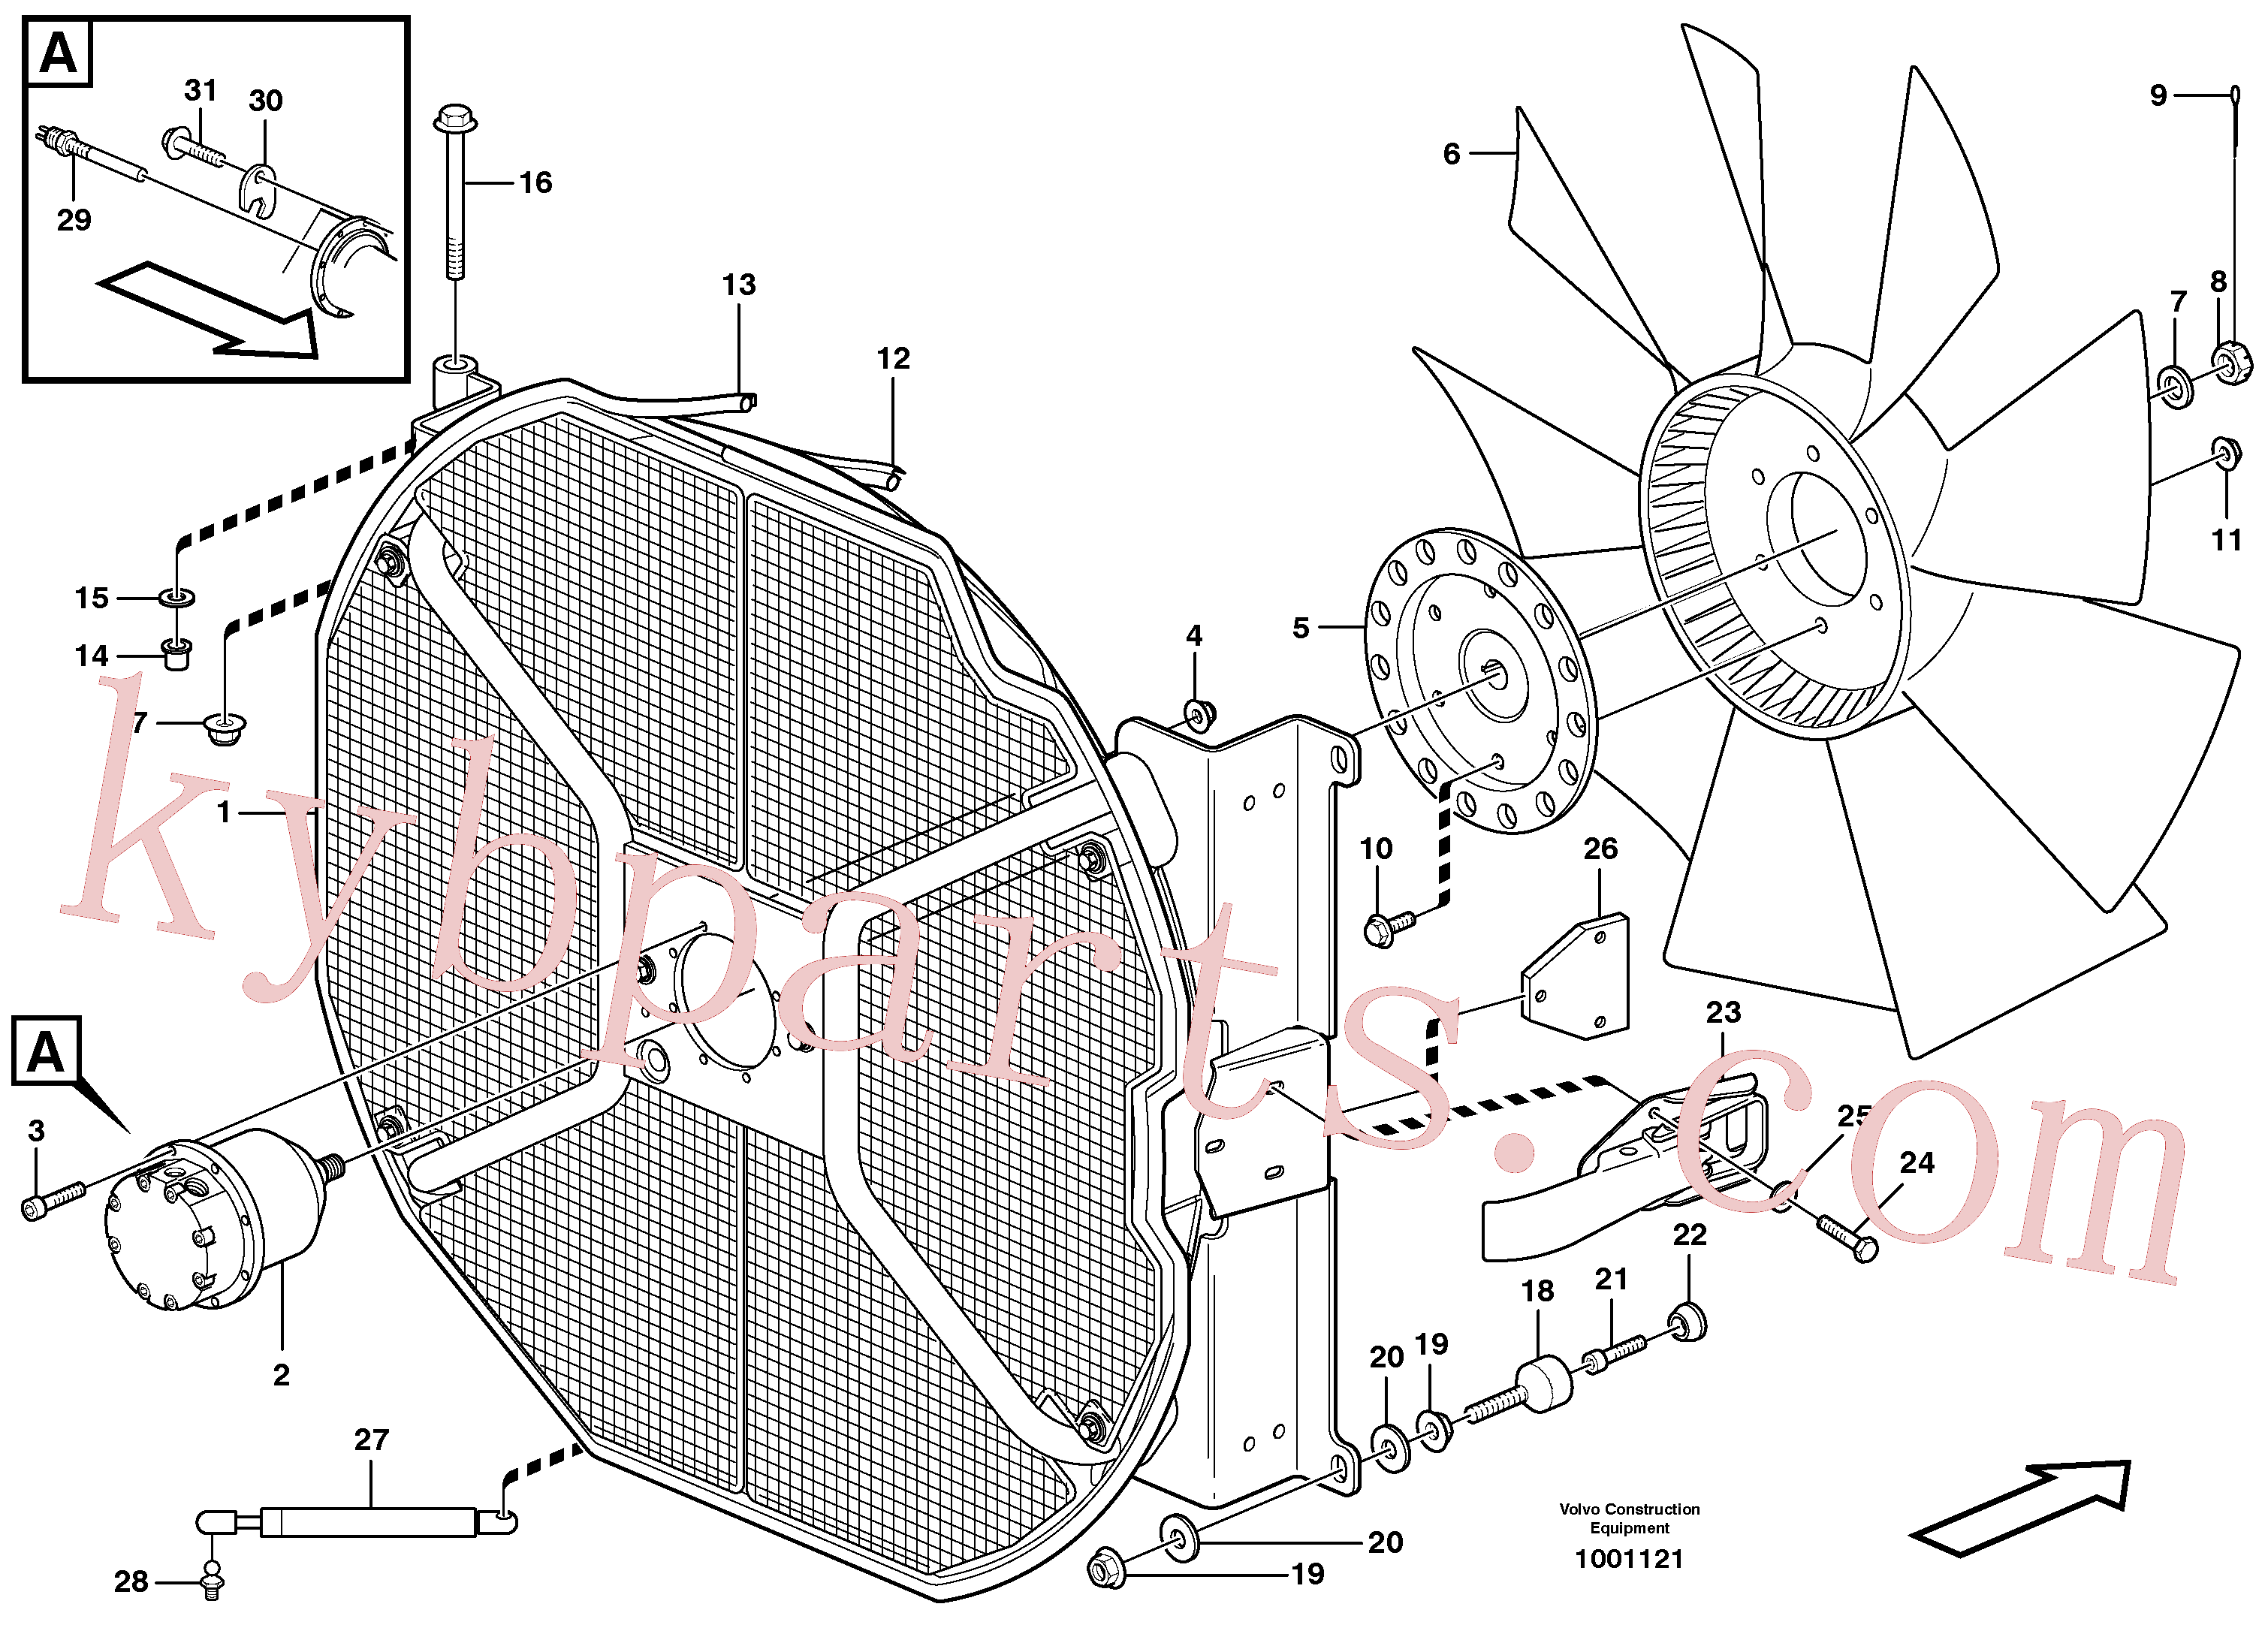 VOE13960145 for Volvo Fan and fan housing(1001121 assembly)